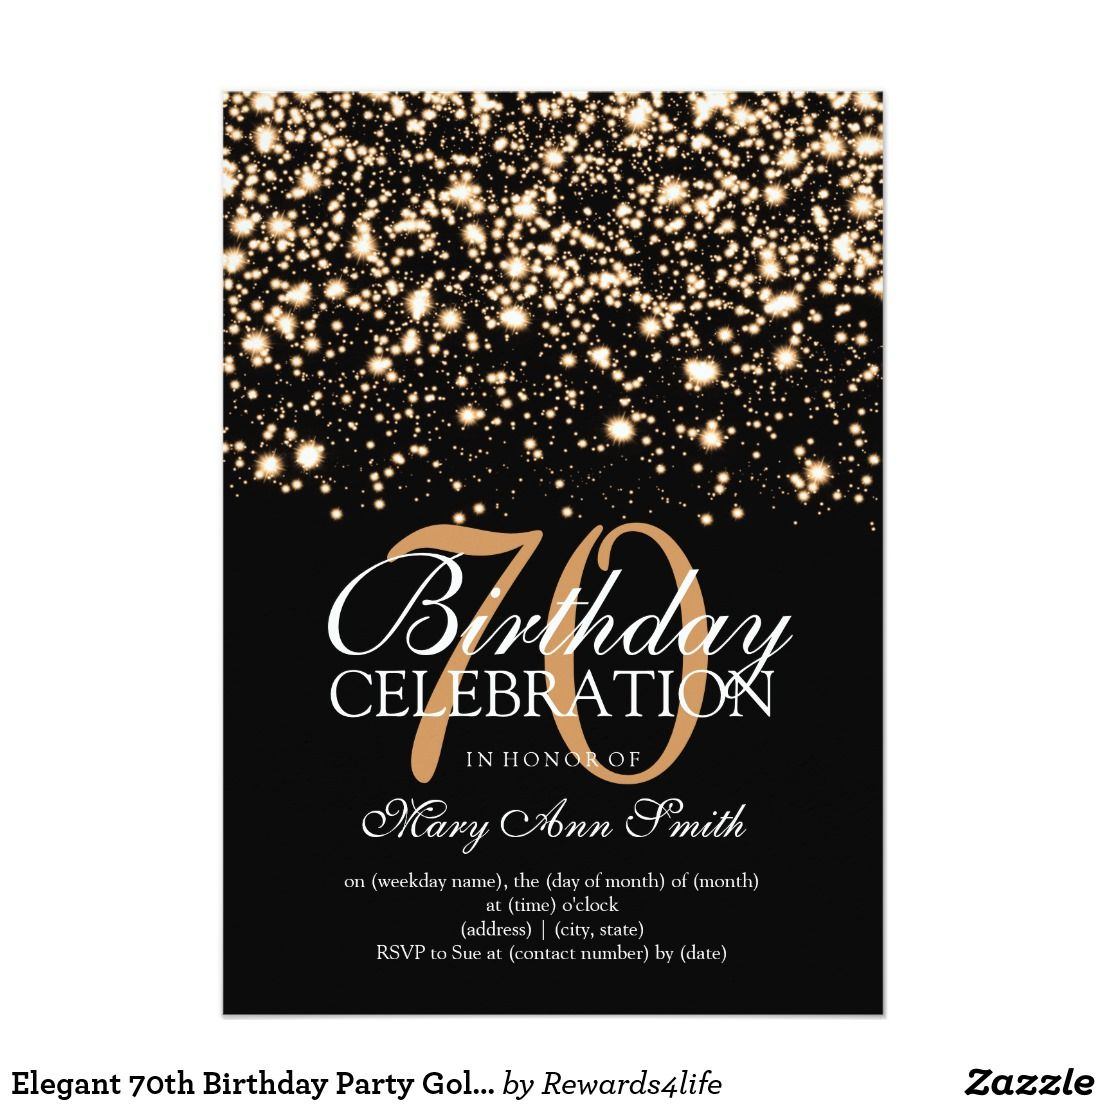 Elegant 70th Birthday Party Gold Midnight Glam Card Invitation Template Featuring Lights And